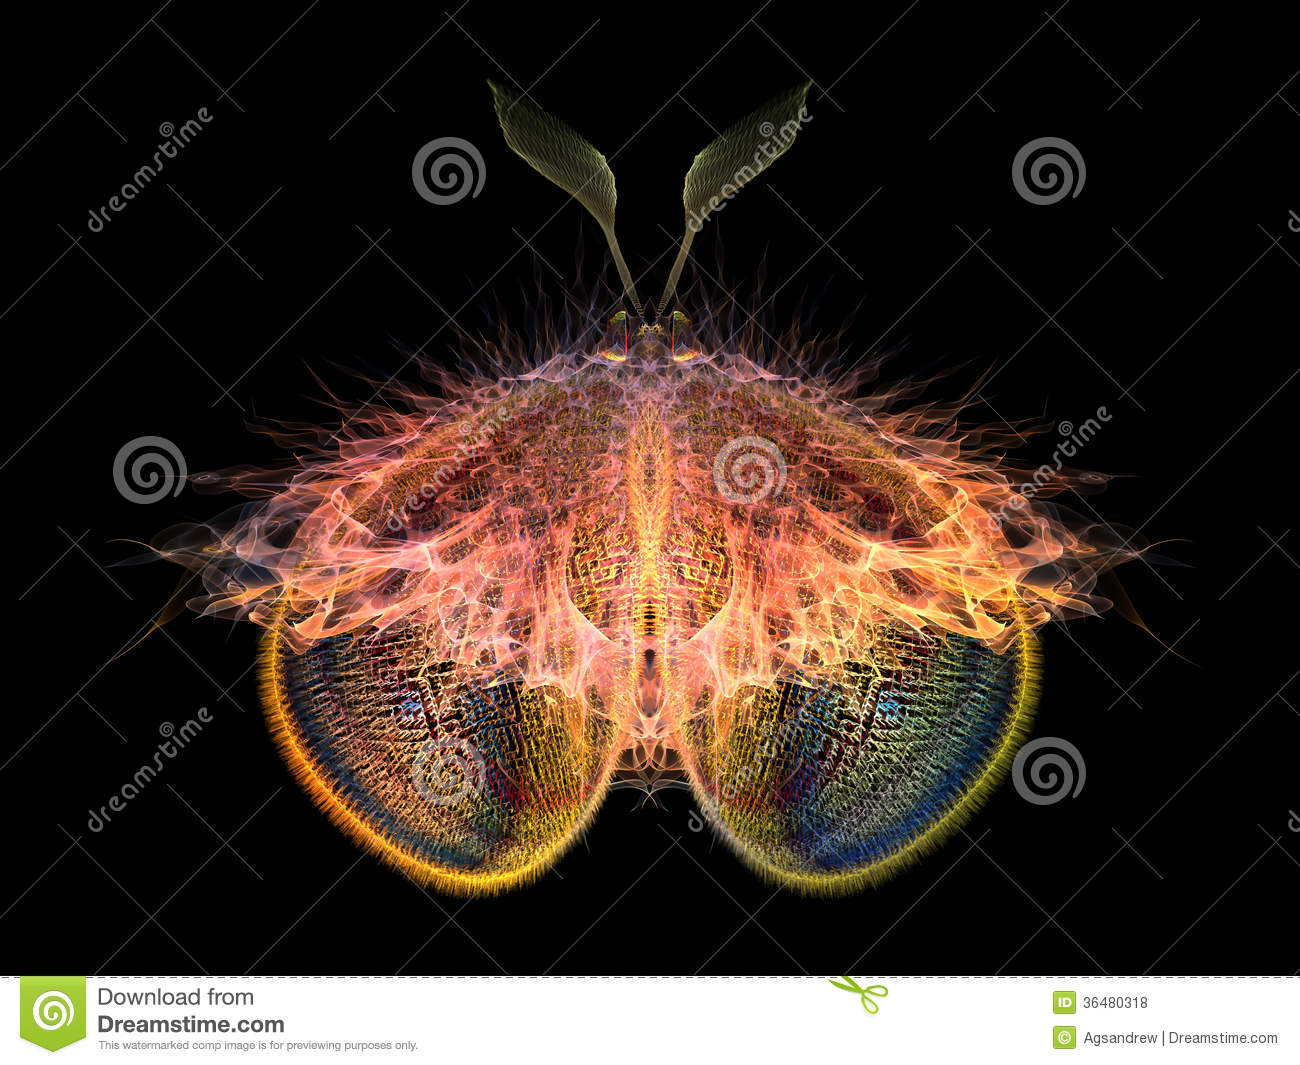 Butterflies of Never series. Abstract design made of fractal organic ...